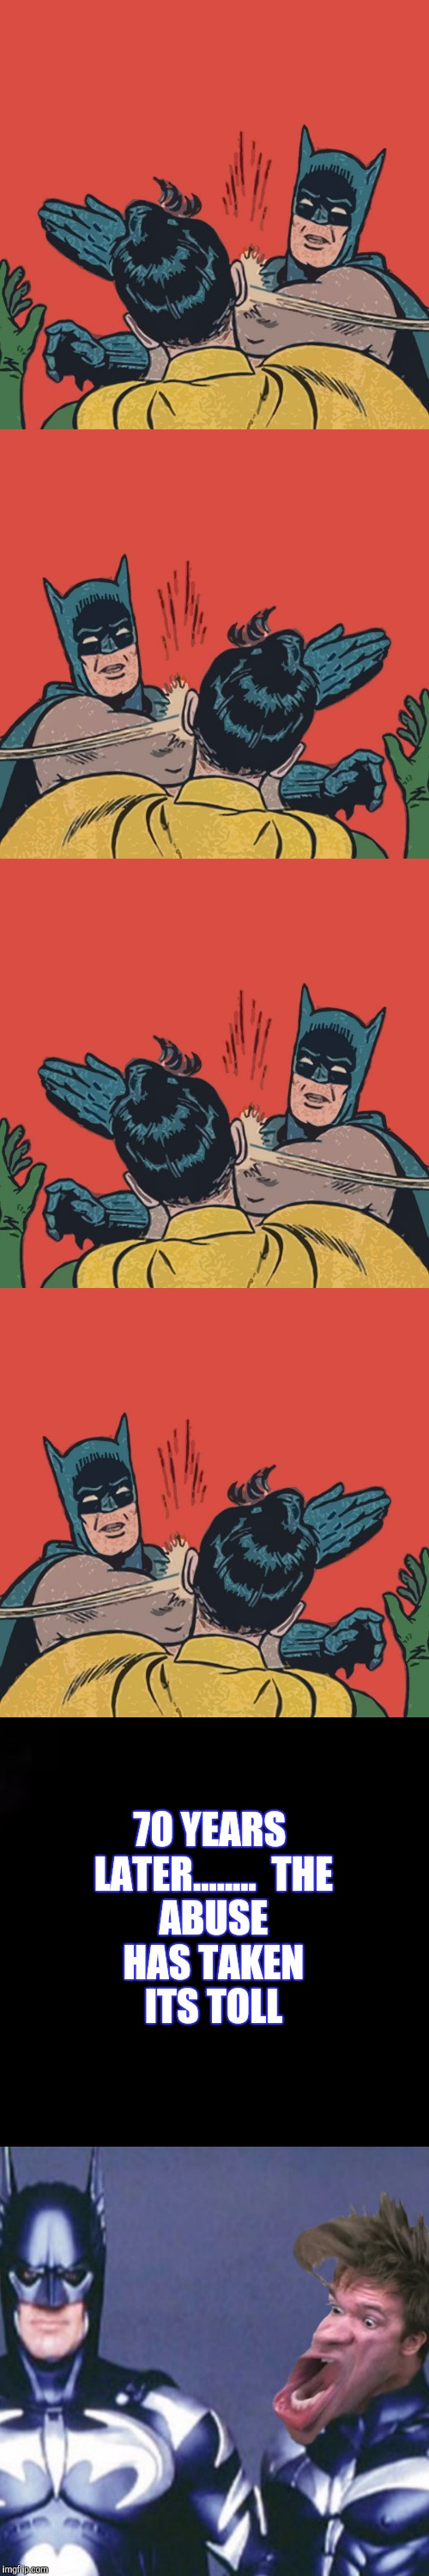 JUSTICE FOR ROBIN | 70 YEARS LATER........THE ABUSE HAS TAKEN ITS TOLL | image tagged in batman slapping robin,abuse,damage,funny | made w/ Imgflip meme maker